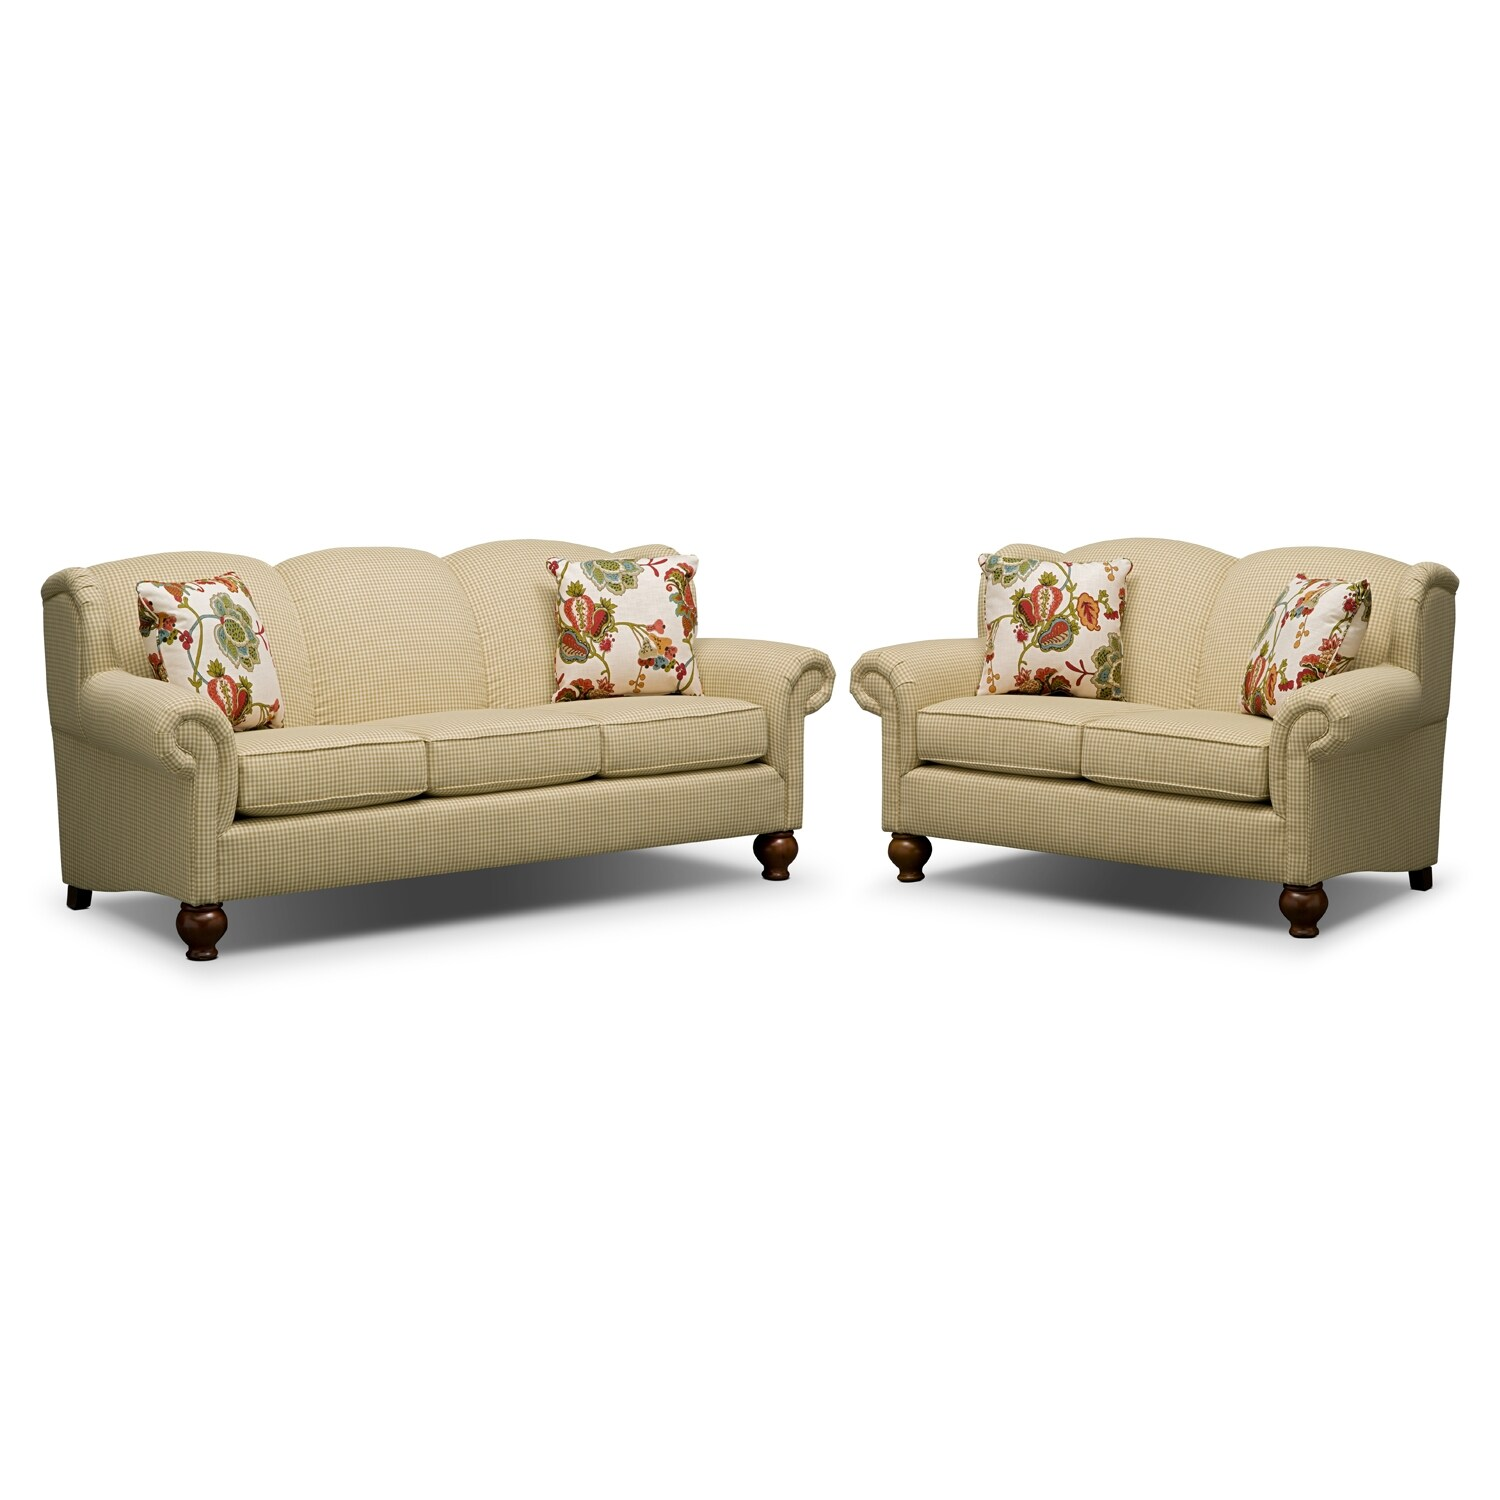 Living Room Furniture - Charlotte II 2 Pc. Living Room